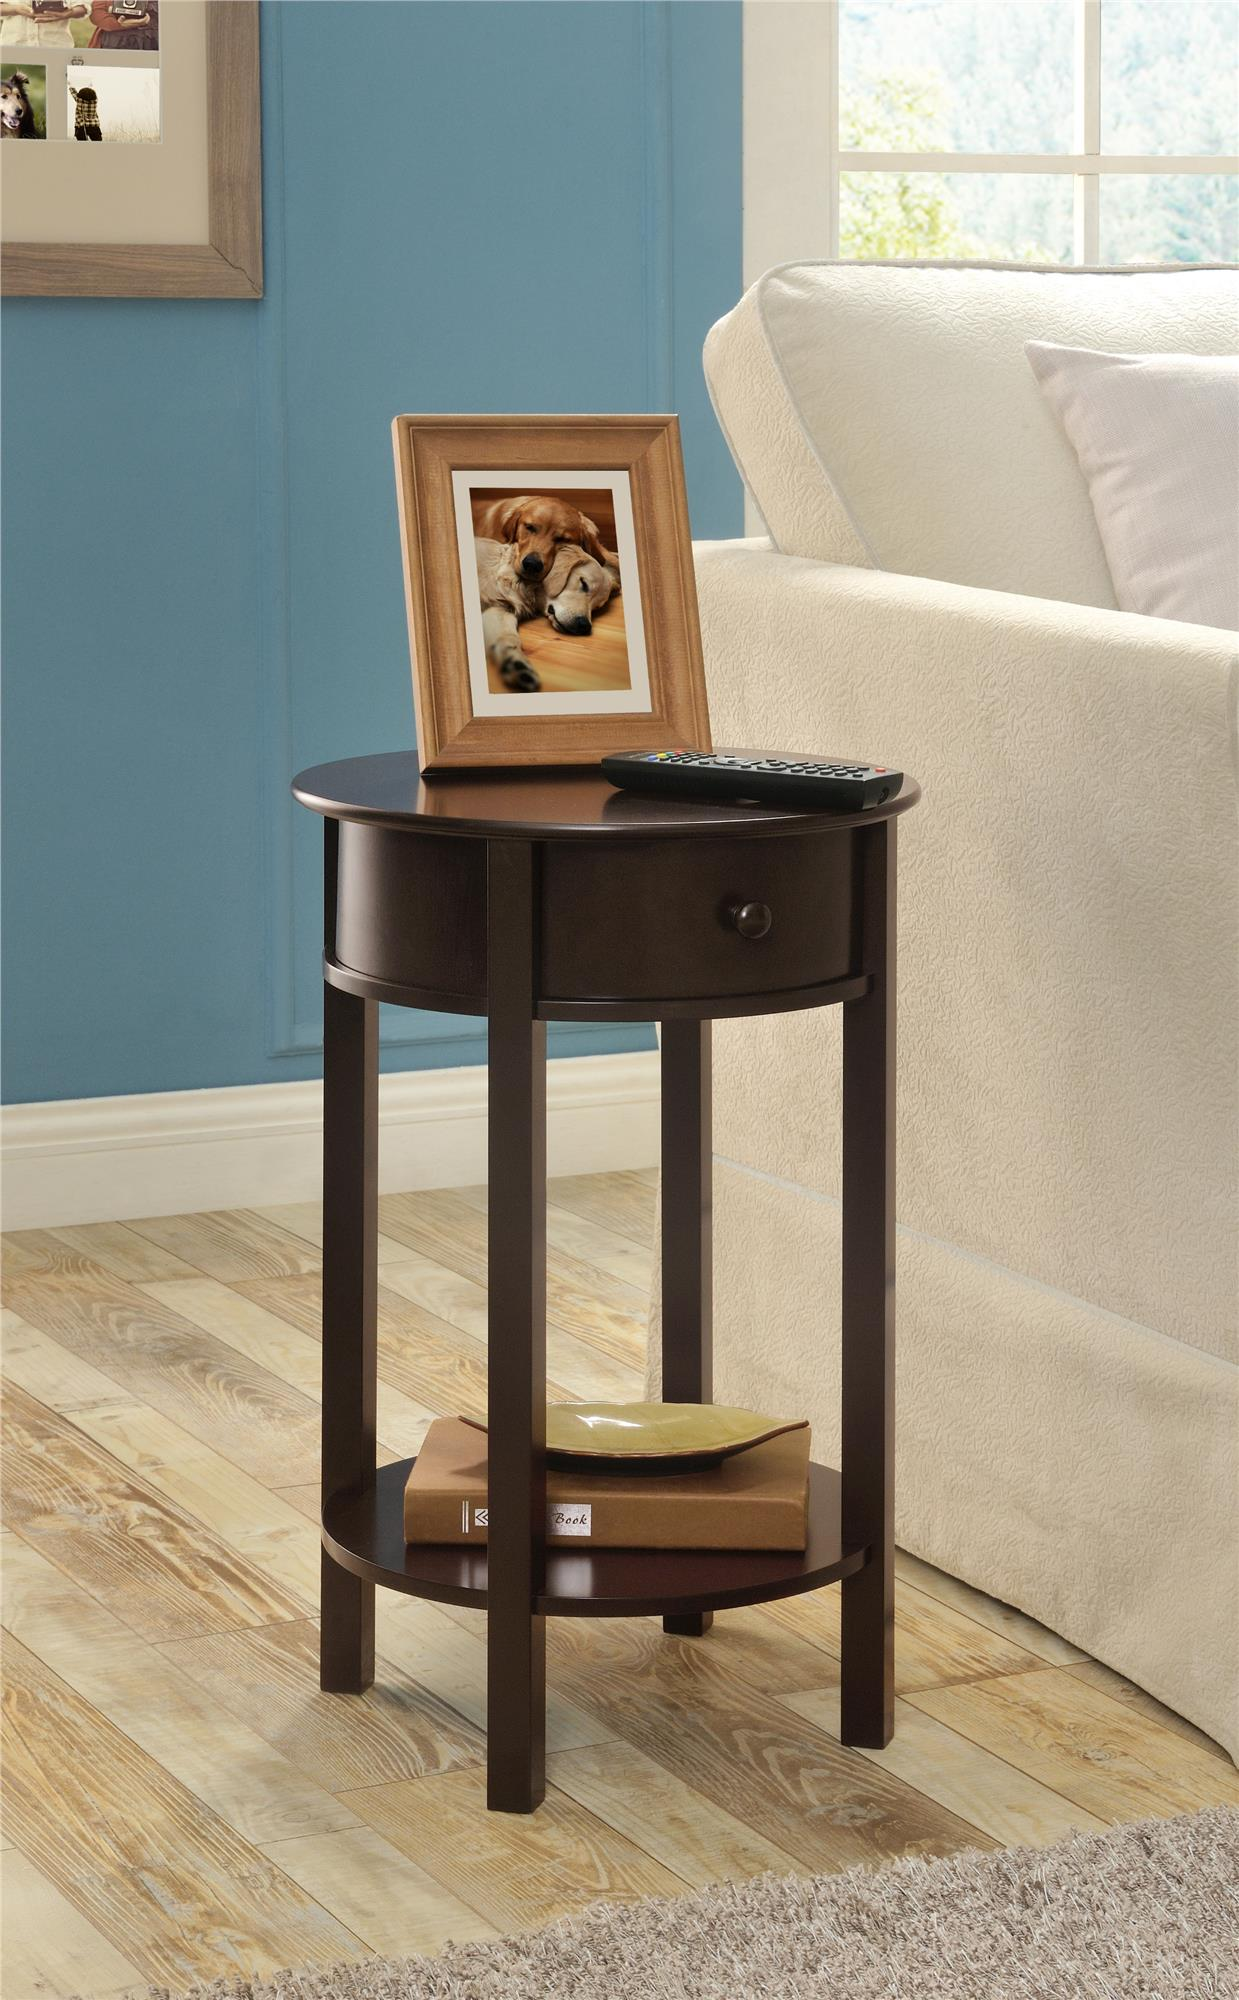 ameriwood home tipton round accent table espresso very small frosted glass coffee oil rubbed bronze paint green marble side drum hardware white and wood nightstand square lucite